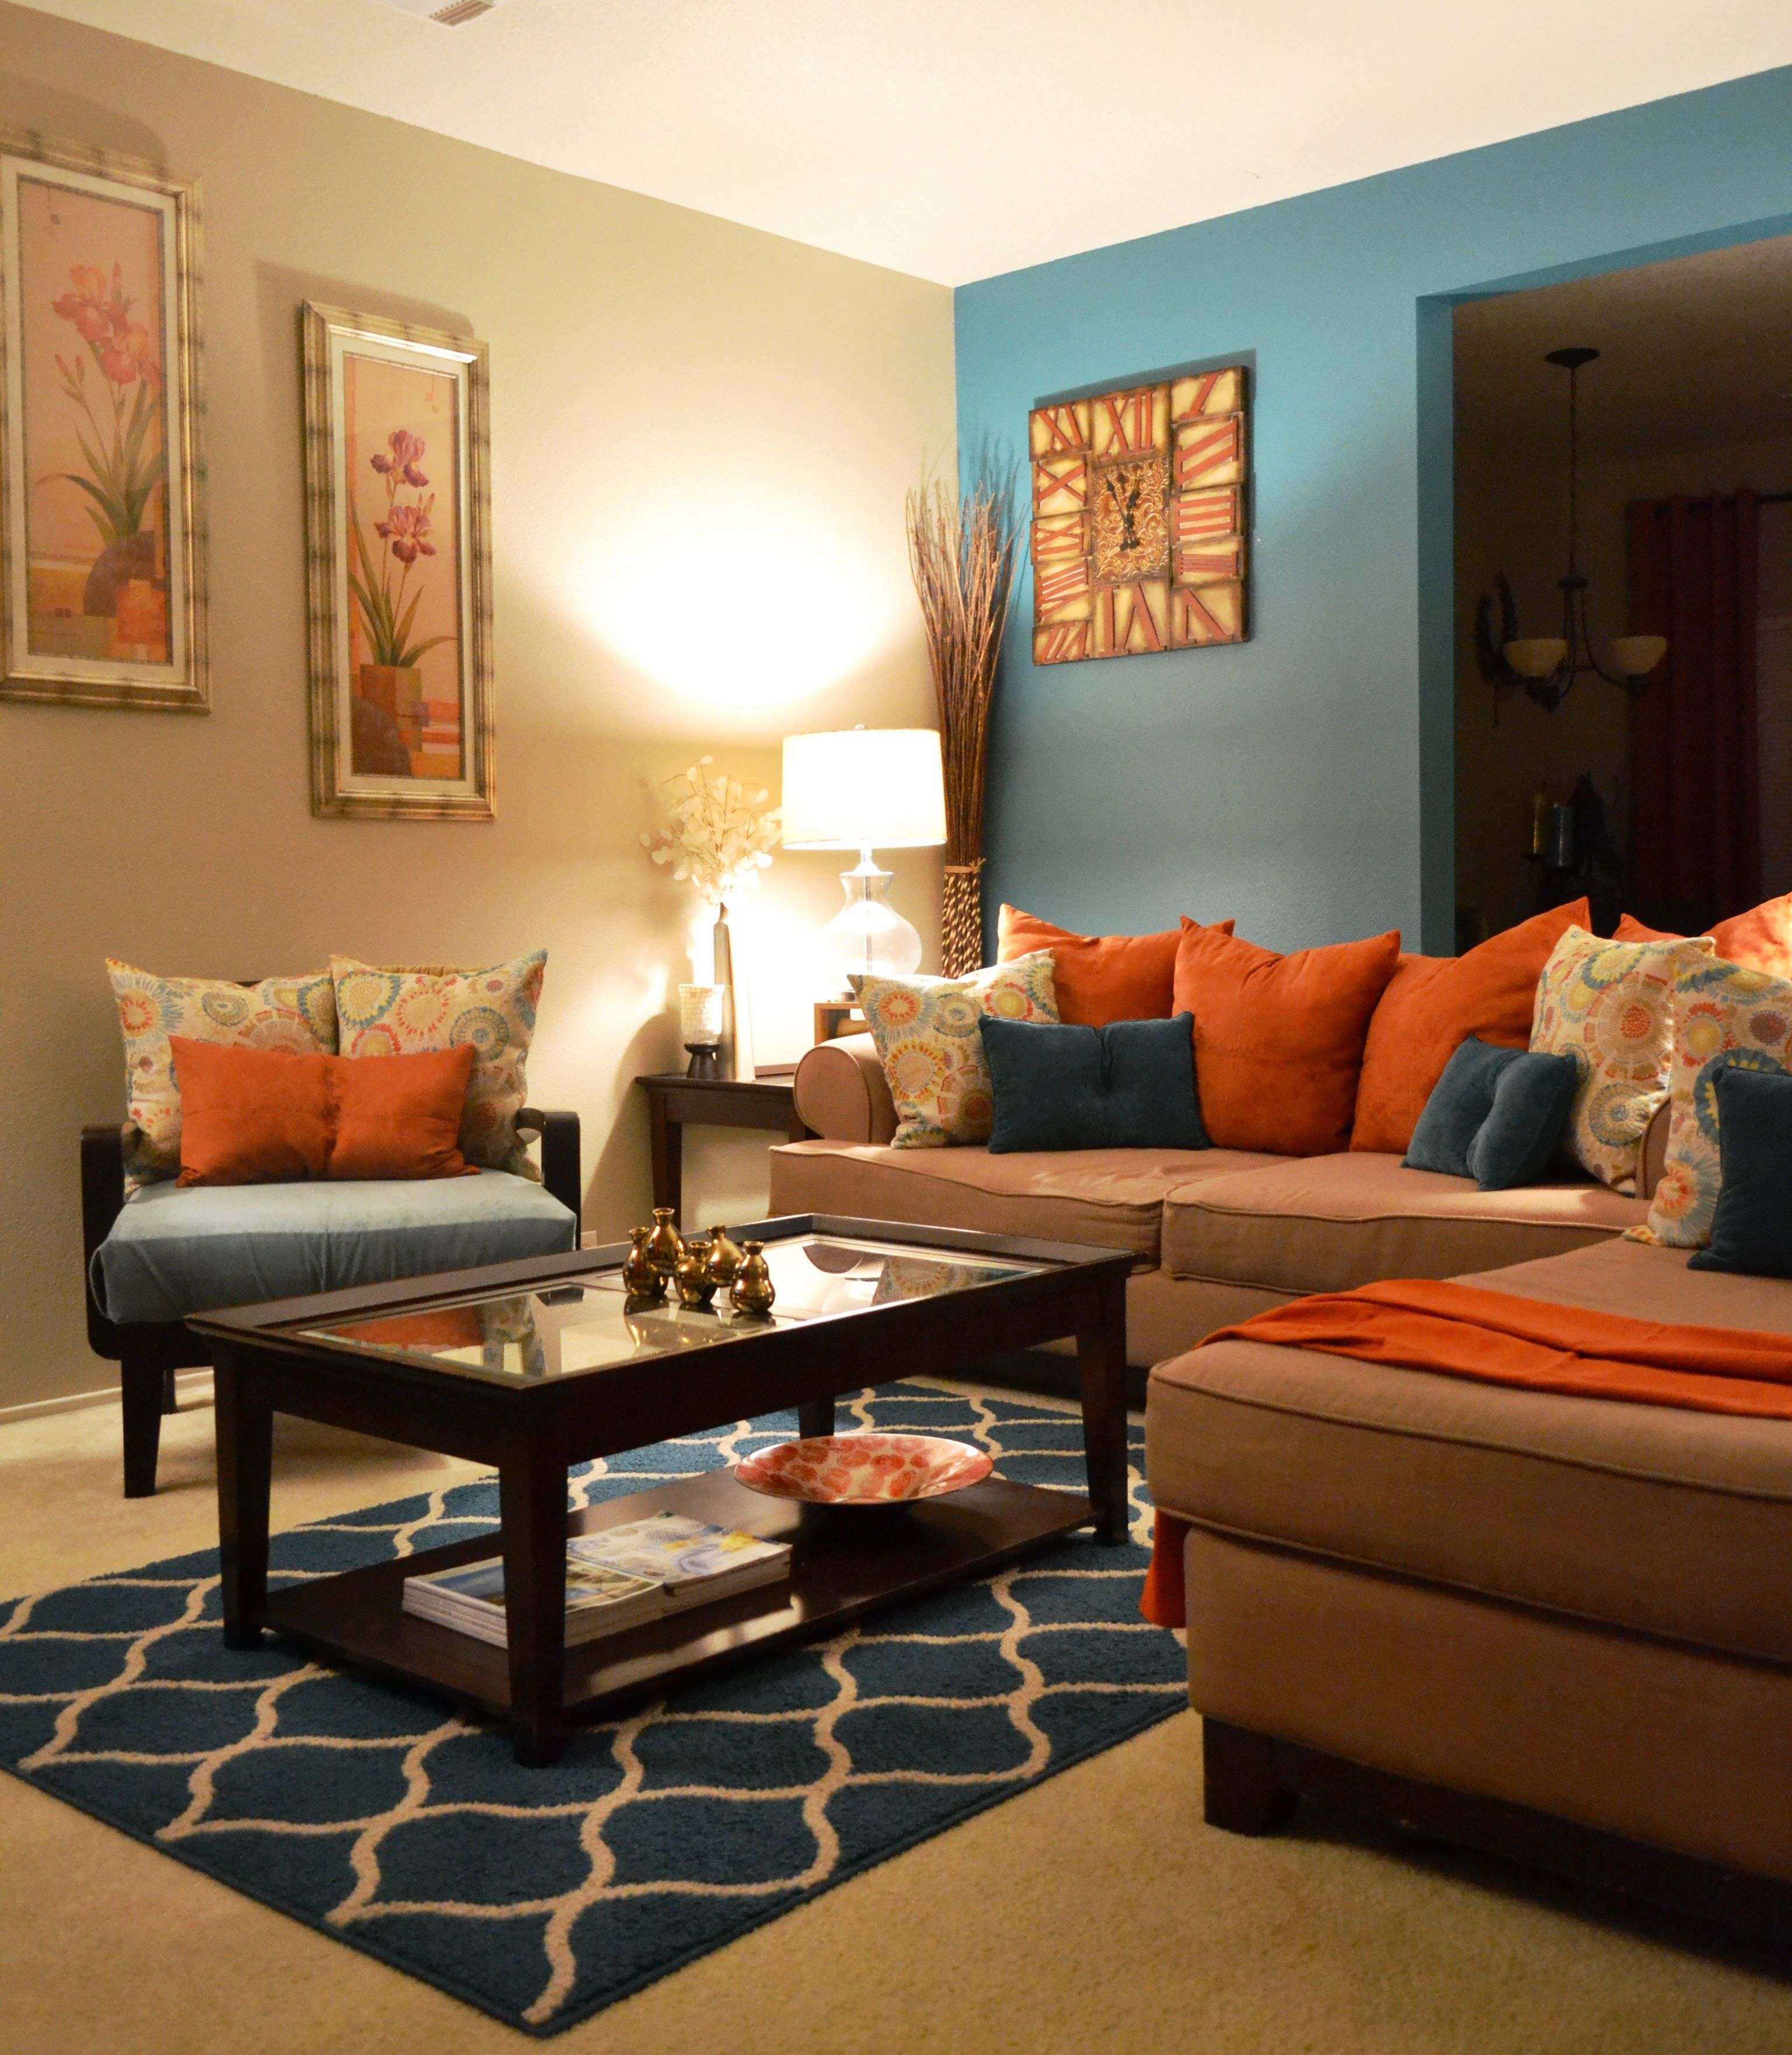 Rugs Coffee Table Pillows Teal Orange Living Room Behr Paint 730c 3 Castle Path Familyroomdesignpaintcolours